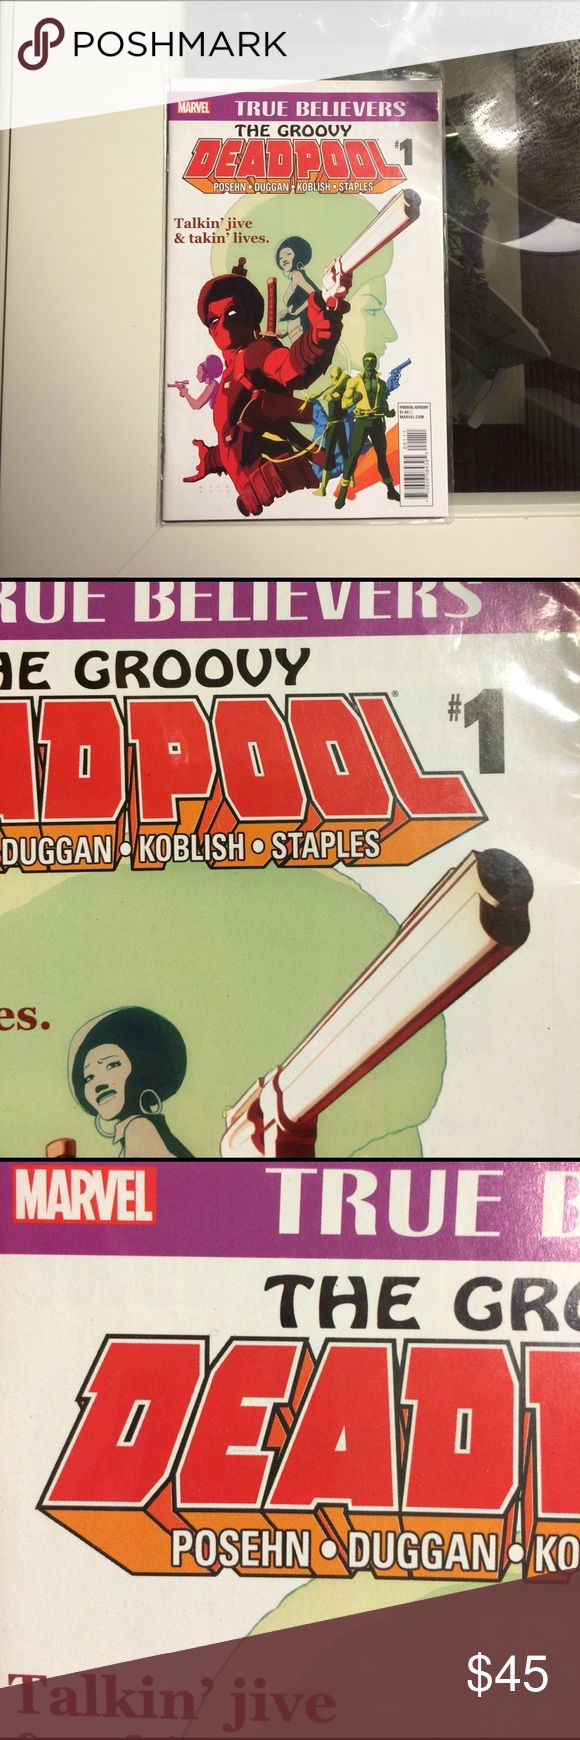 "1st PRINT TGE GROOVY DEADPOOL COMIC Rated ""PARENTAL ADVISORY"". NEW. UNREAD. STILL IN ORIGINAL SLEEVE COVER! Marvel Other"